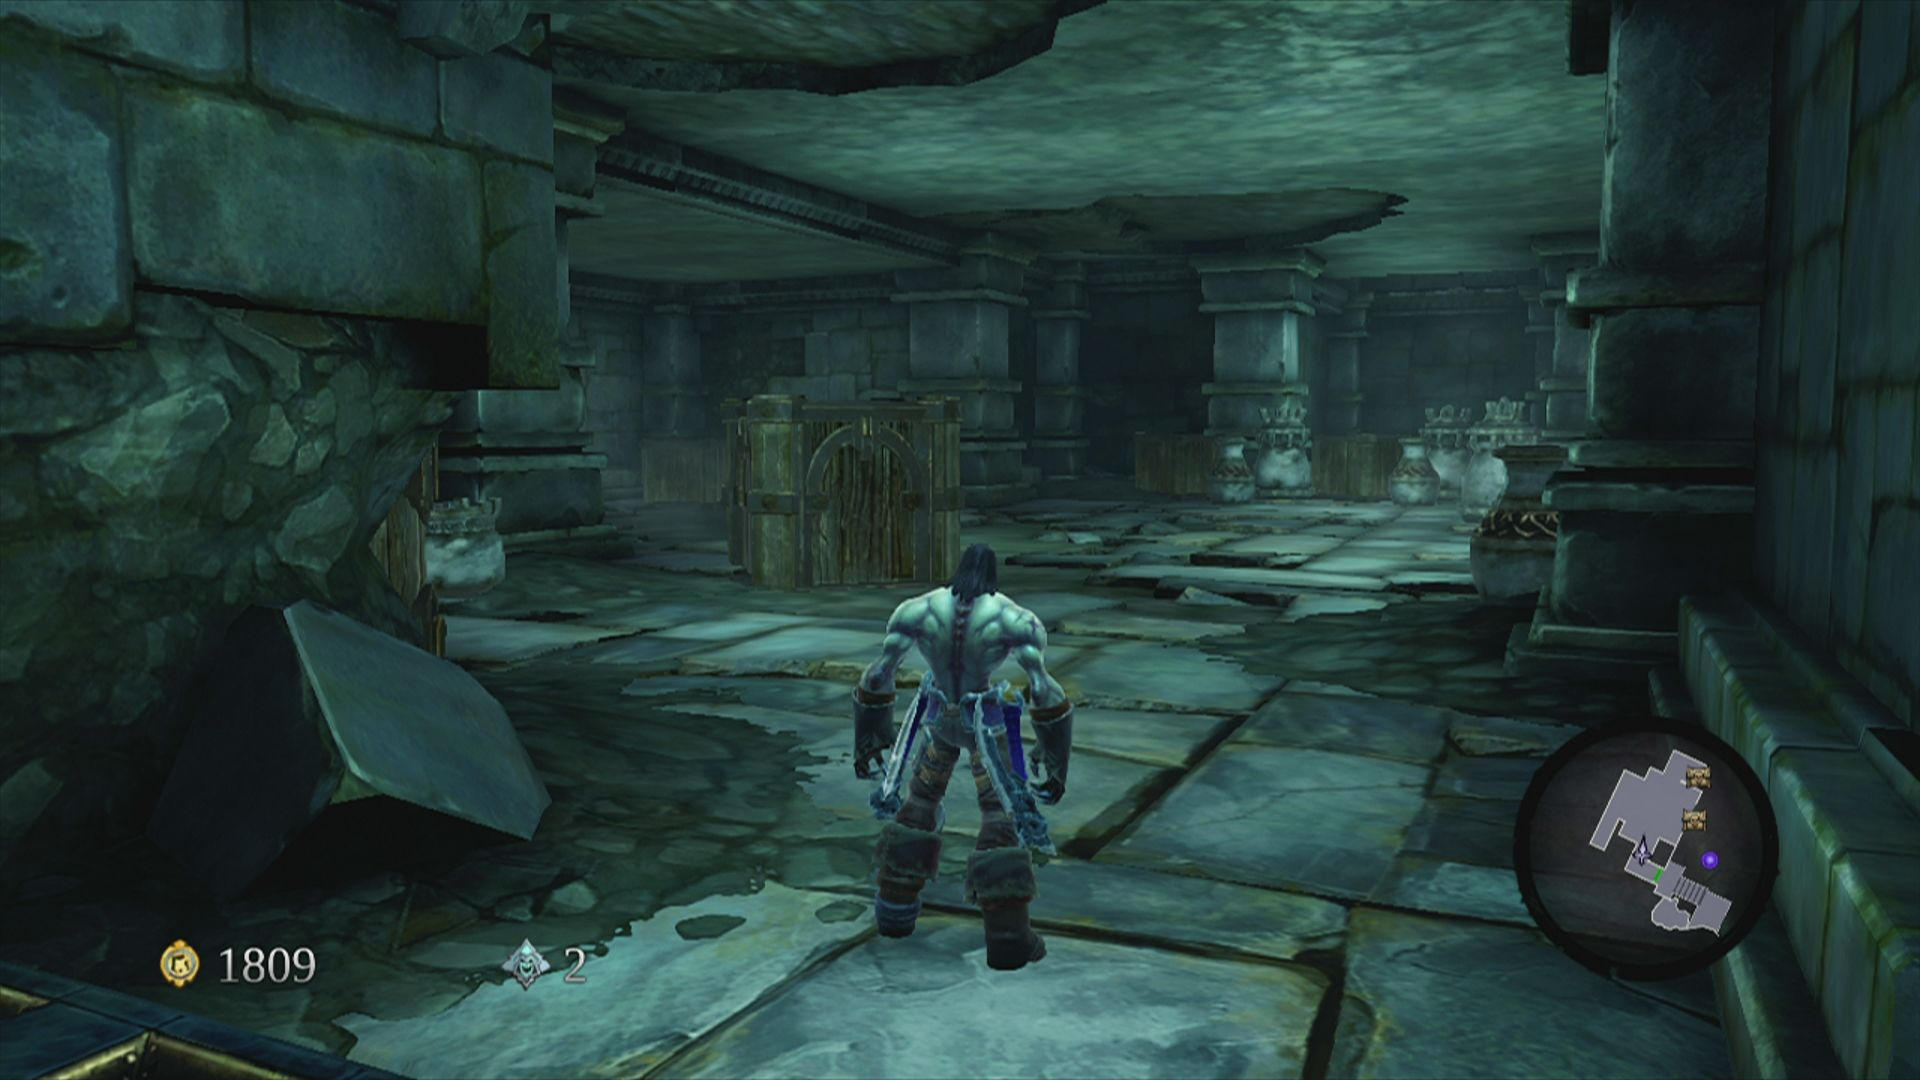 Darksiders II Xbox 360 Smash the stuff to reveal items and enemies